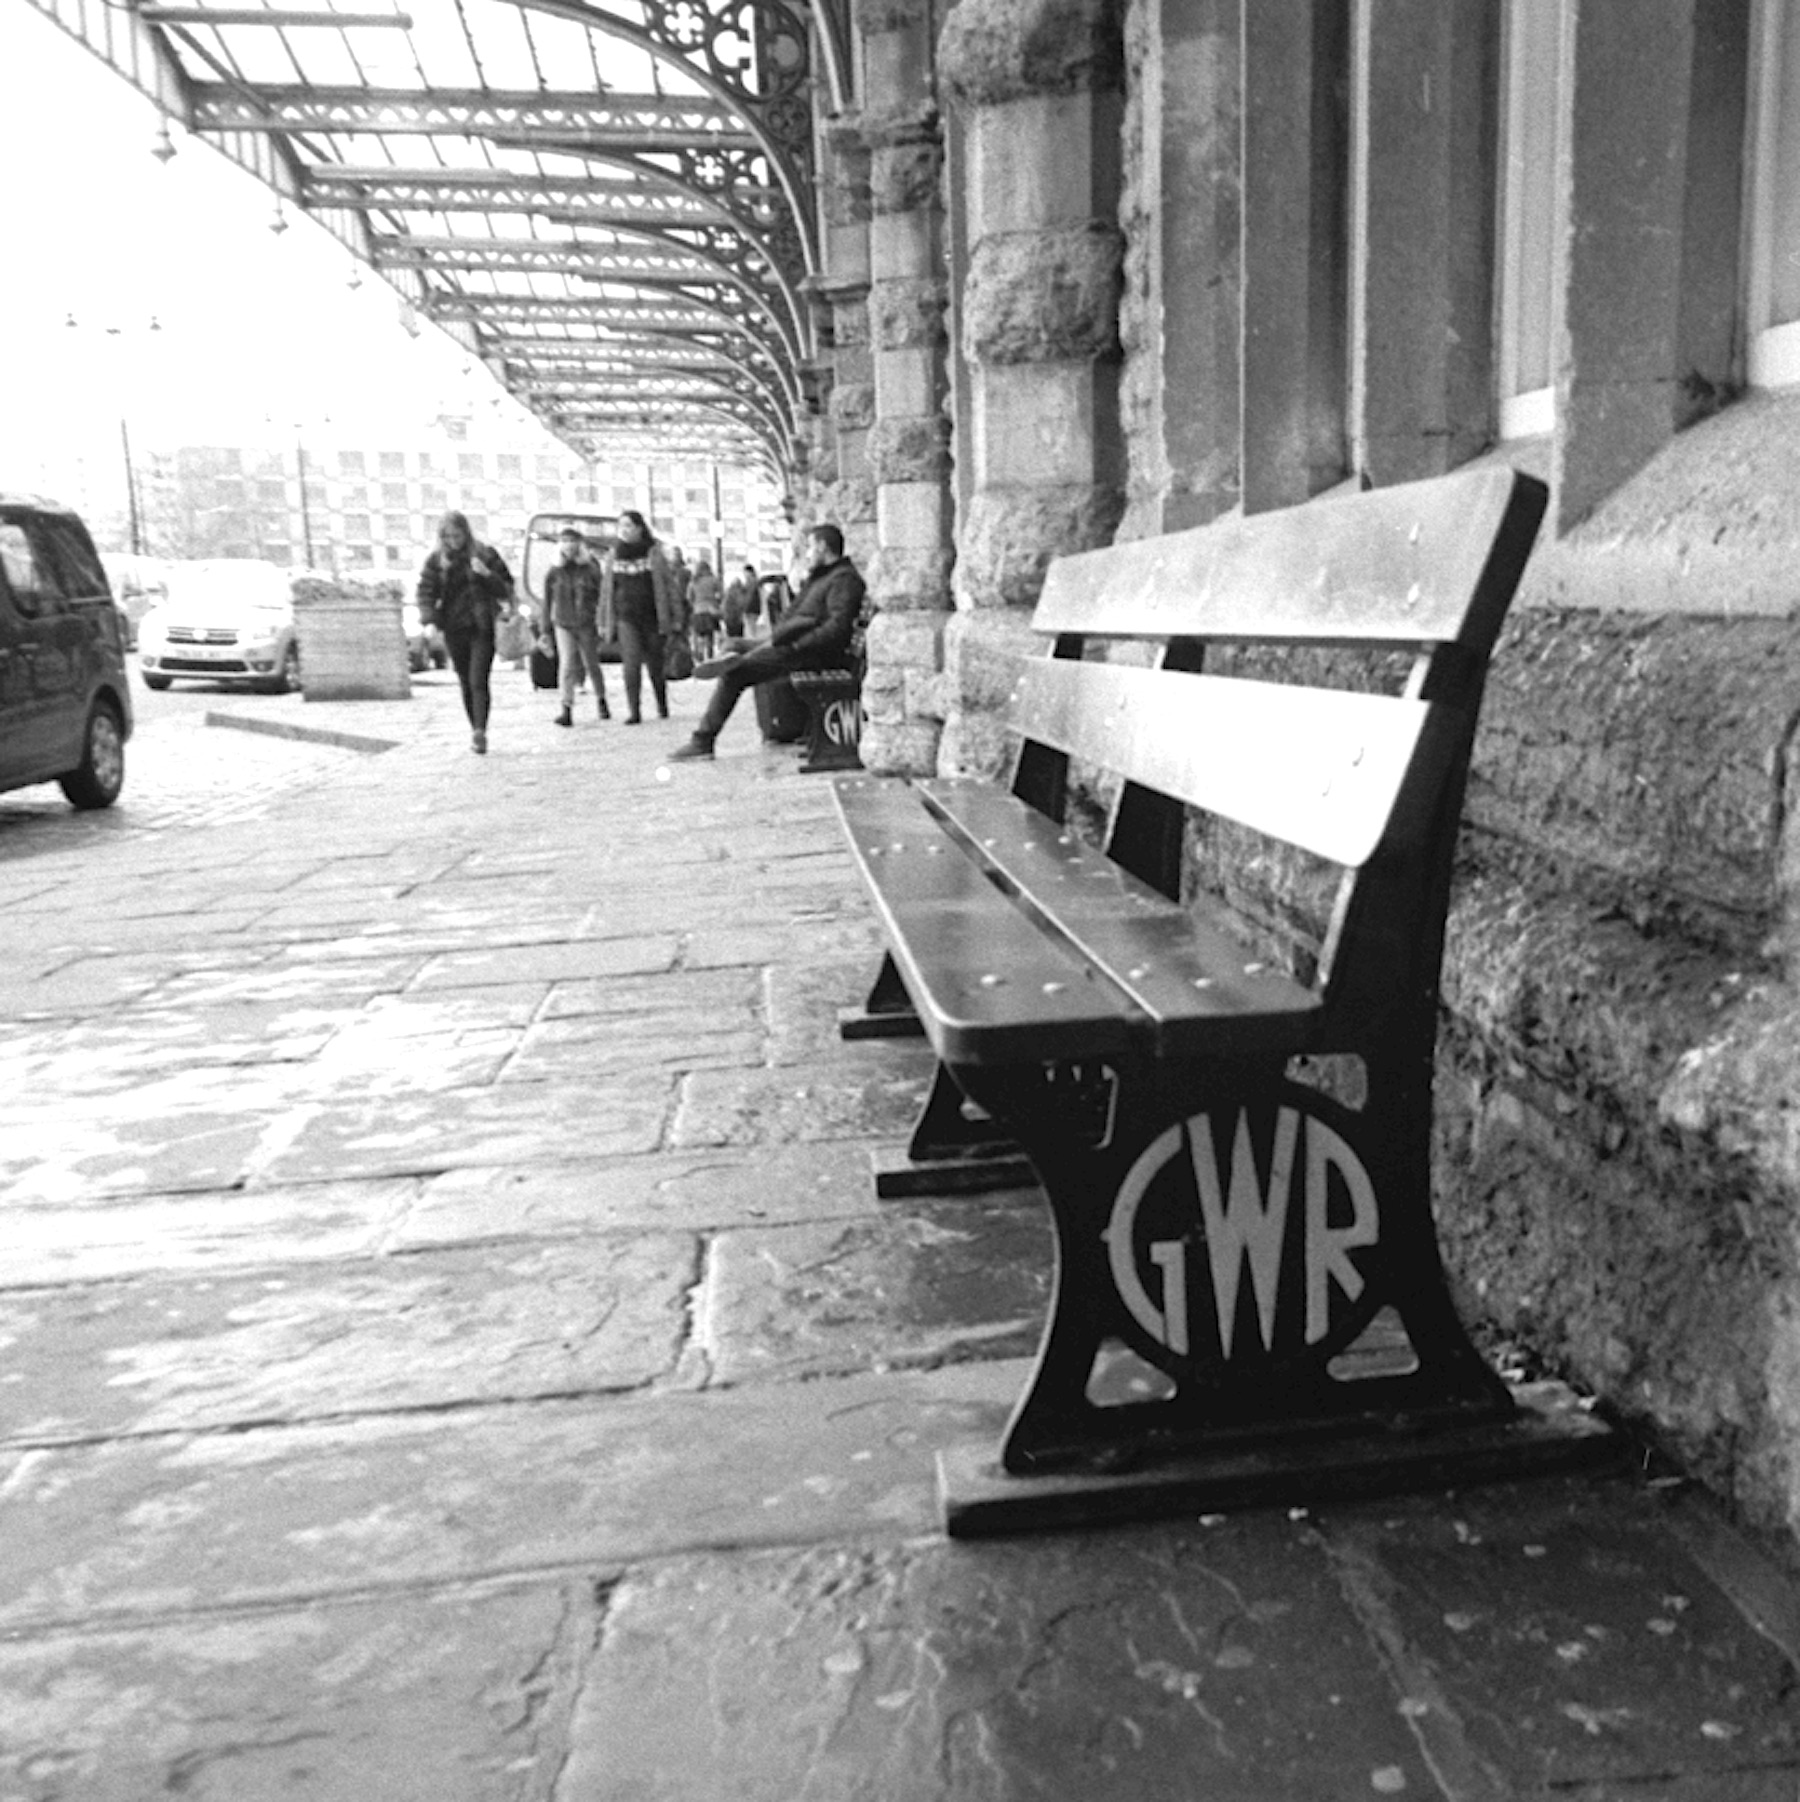 Bench - 5 Frames With... ILFORD HP5 PLUS (EI 400 / 35mm format / Leica M1) - by John Tarrant